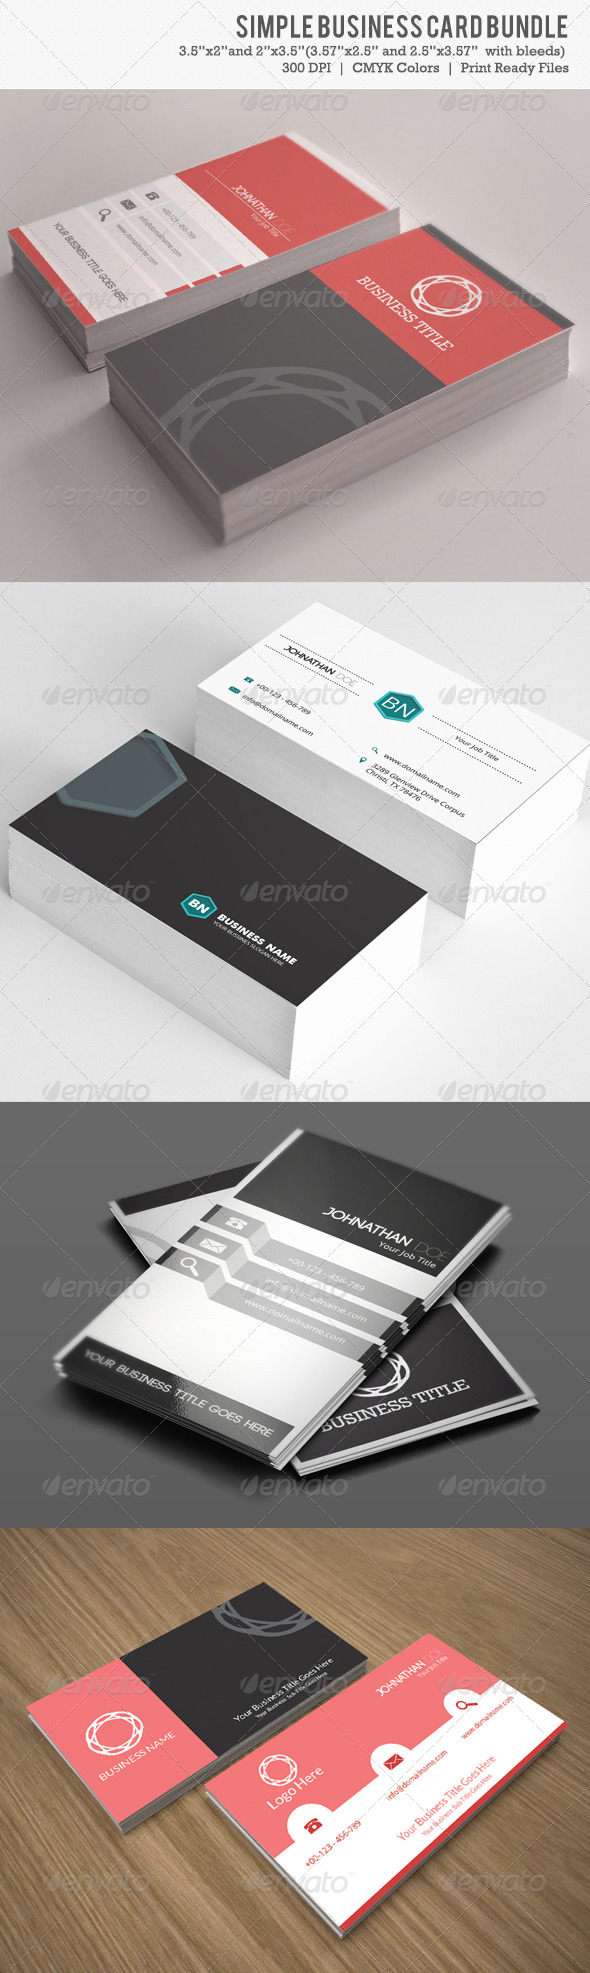 Simple Business Card Bundle 4 IN 1 - Business Cards Print Templates